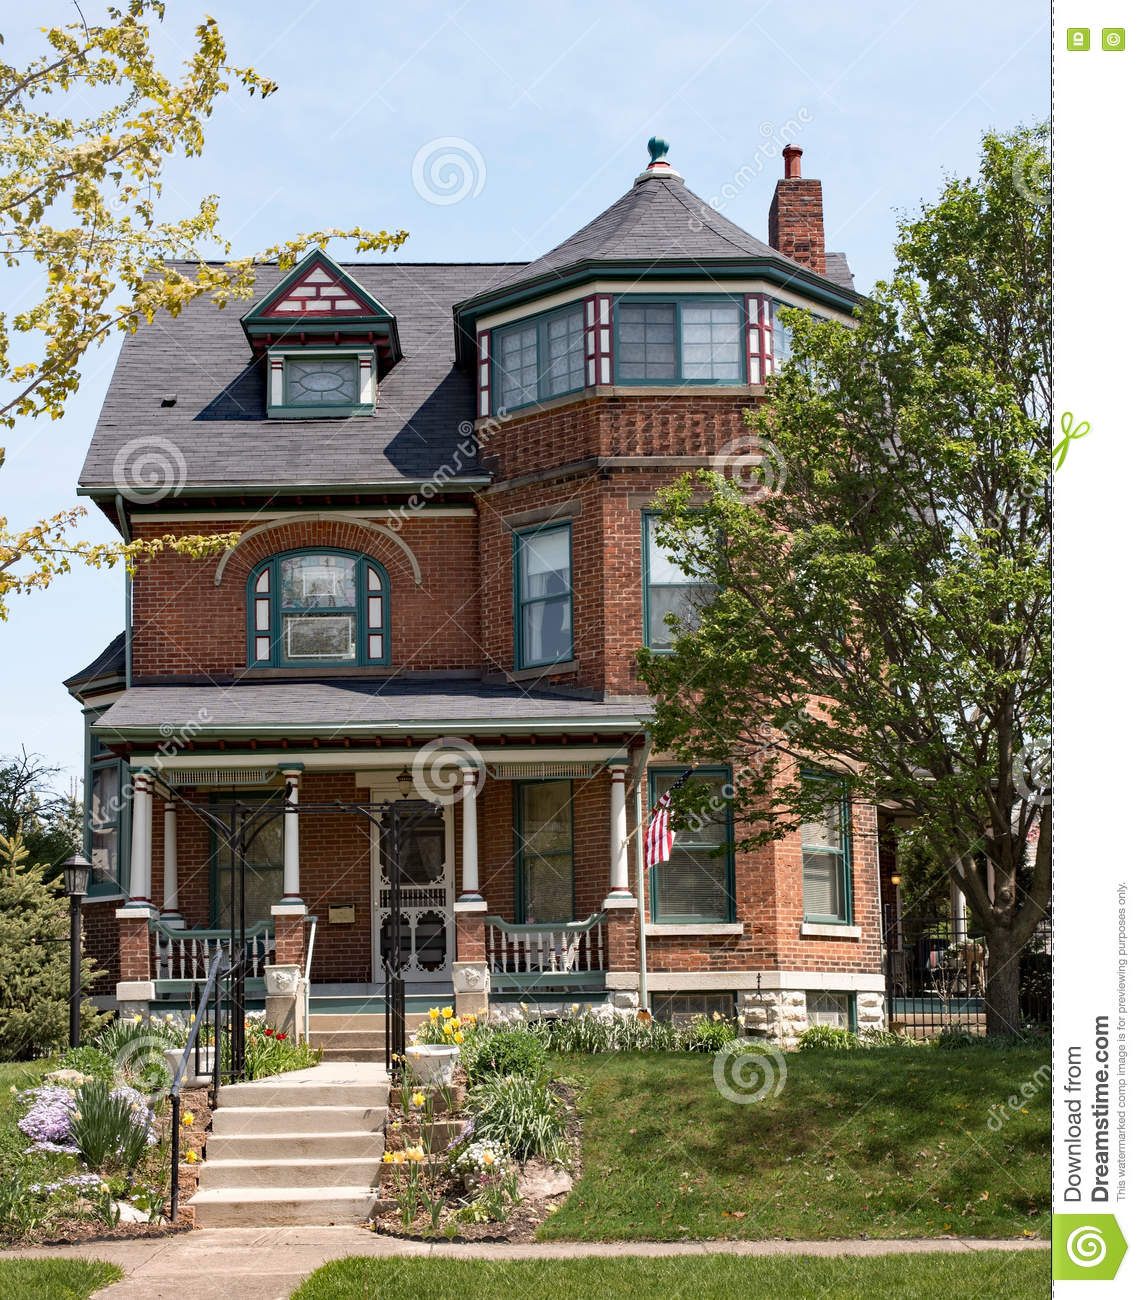 Brick victorian house with turret stock image image of for Brick victorian house